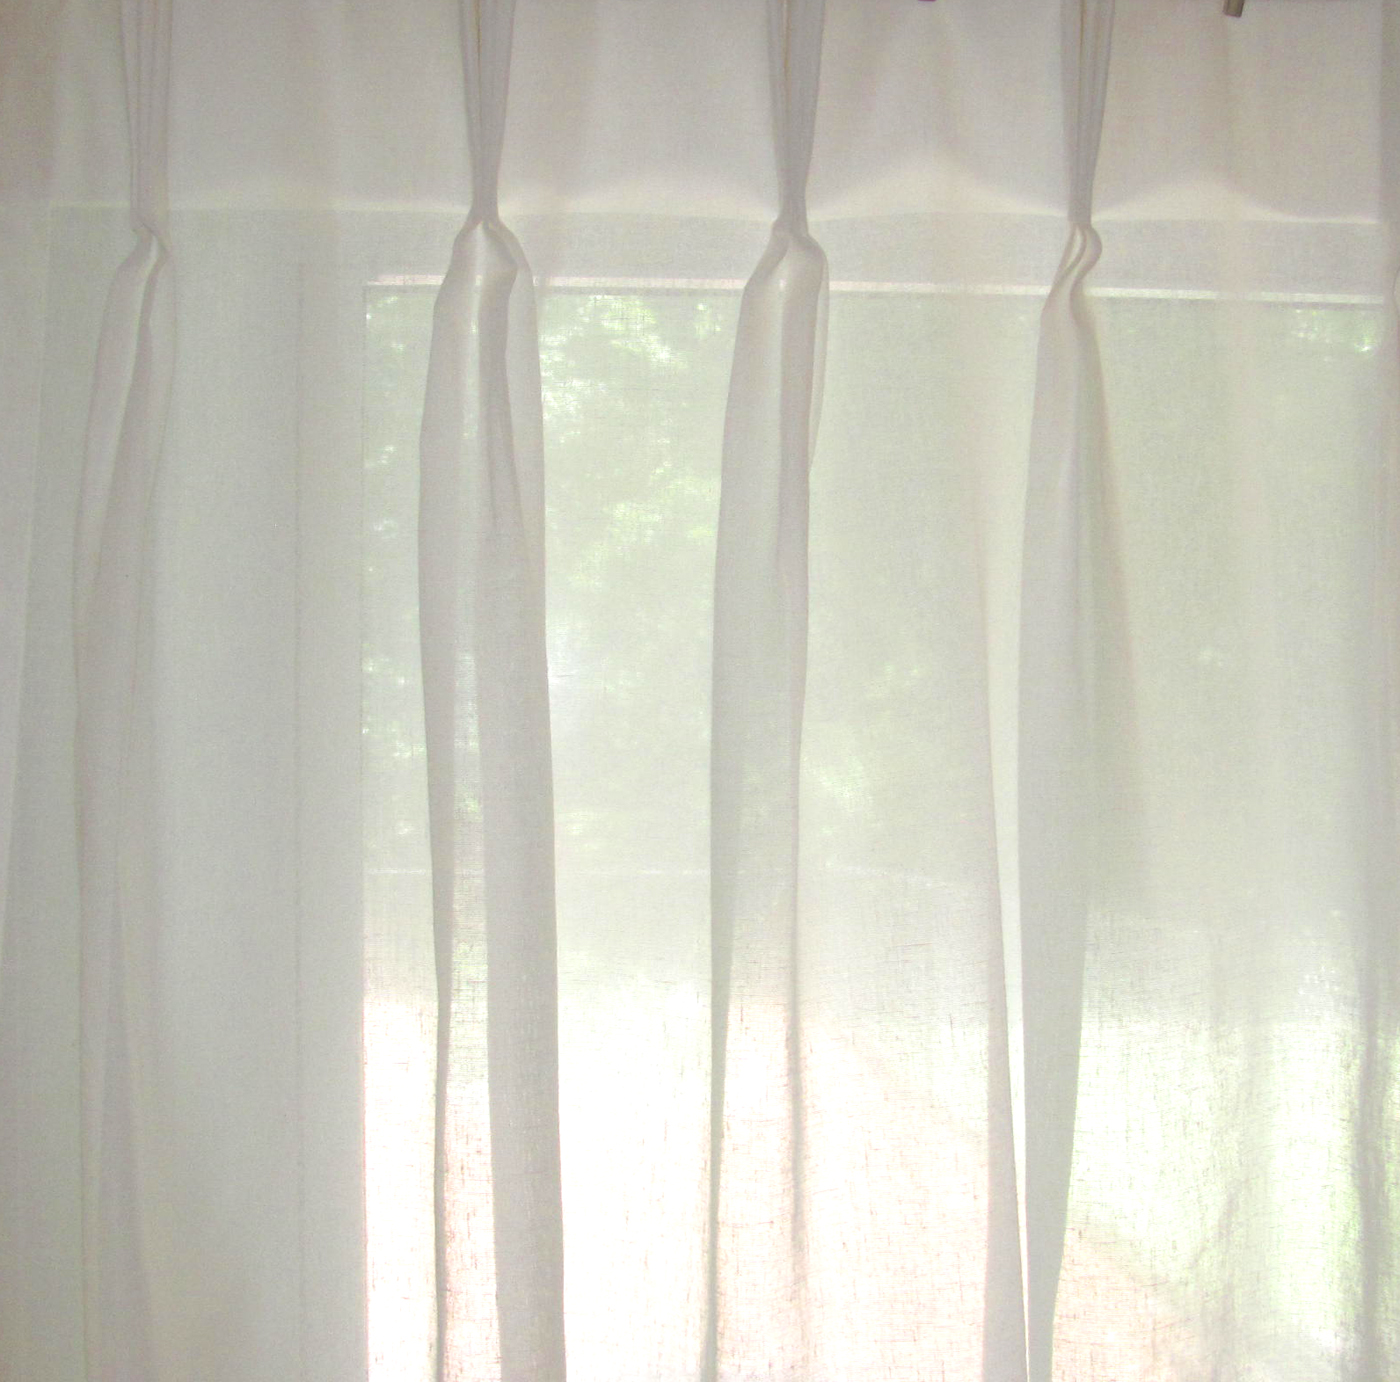 eiffel of furnishings ed t curtain full price curtains with pleat soft aitken pleated quality perth drapes size best design is reverse detail button box inverted modern q pinch online uk